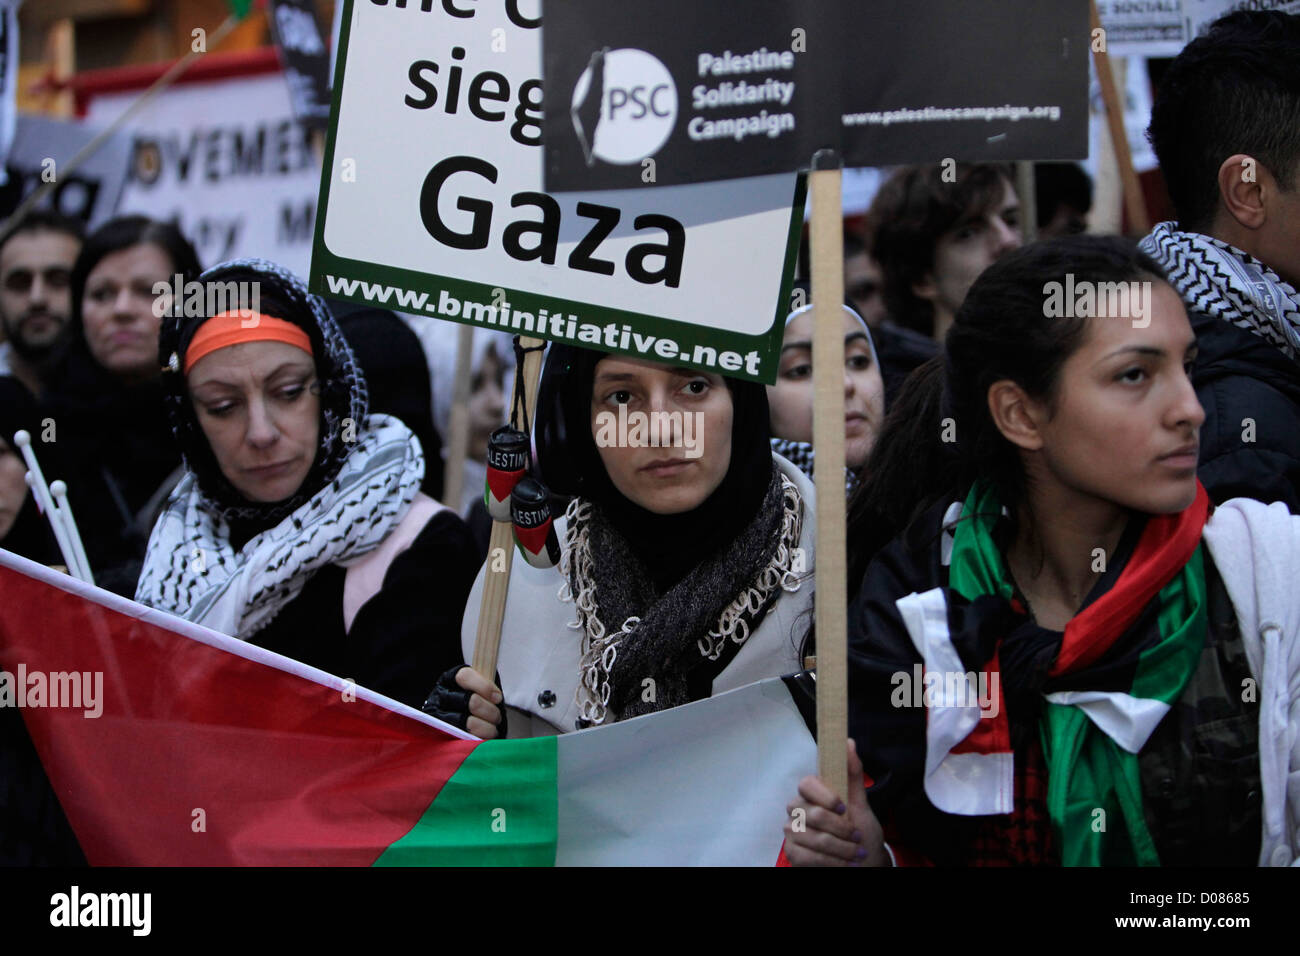 © Rich Bowen Photography. 17/11/2011. London, U.K. British muslims and supporters of palestine hold a rally - Stock Image